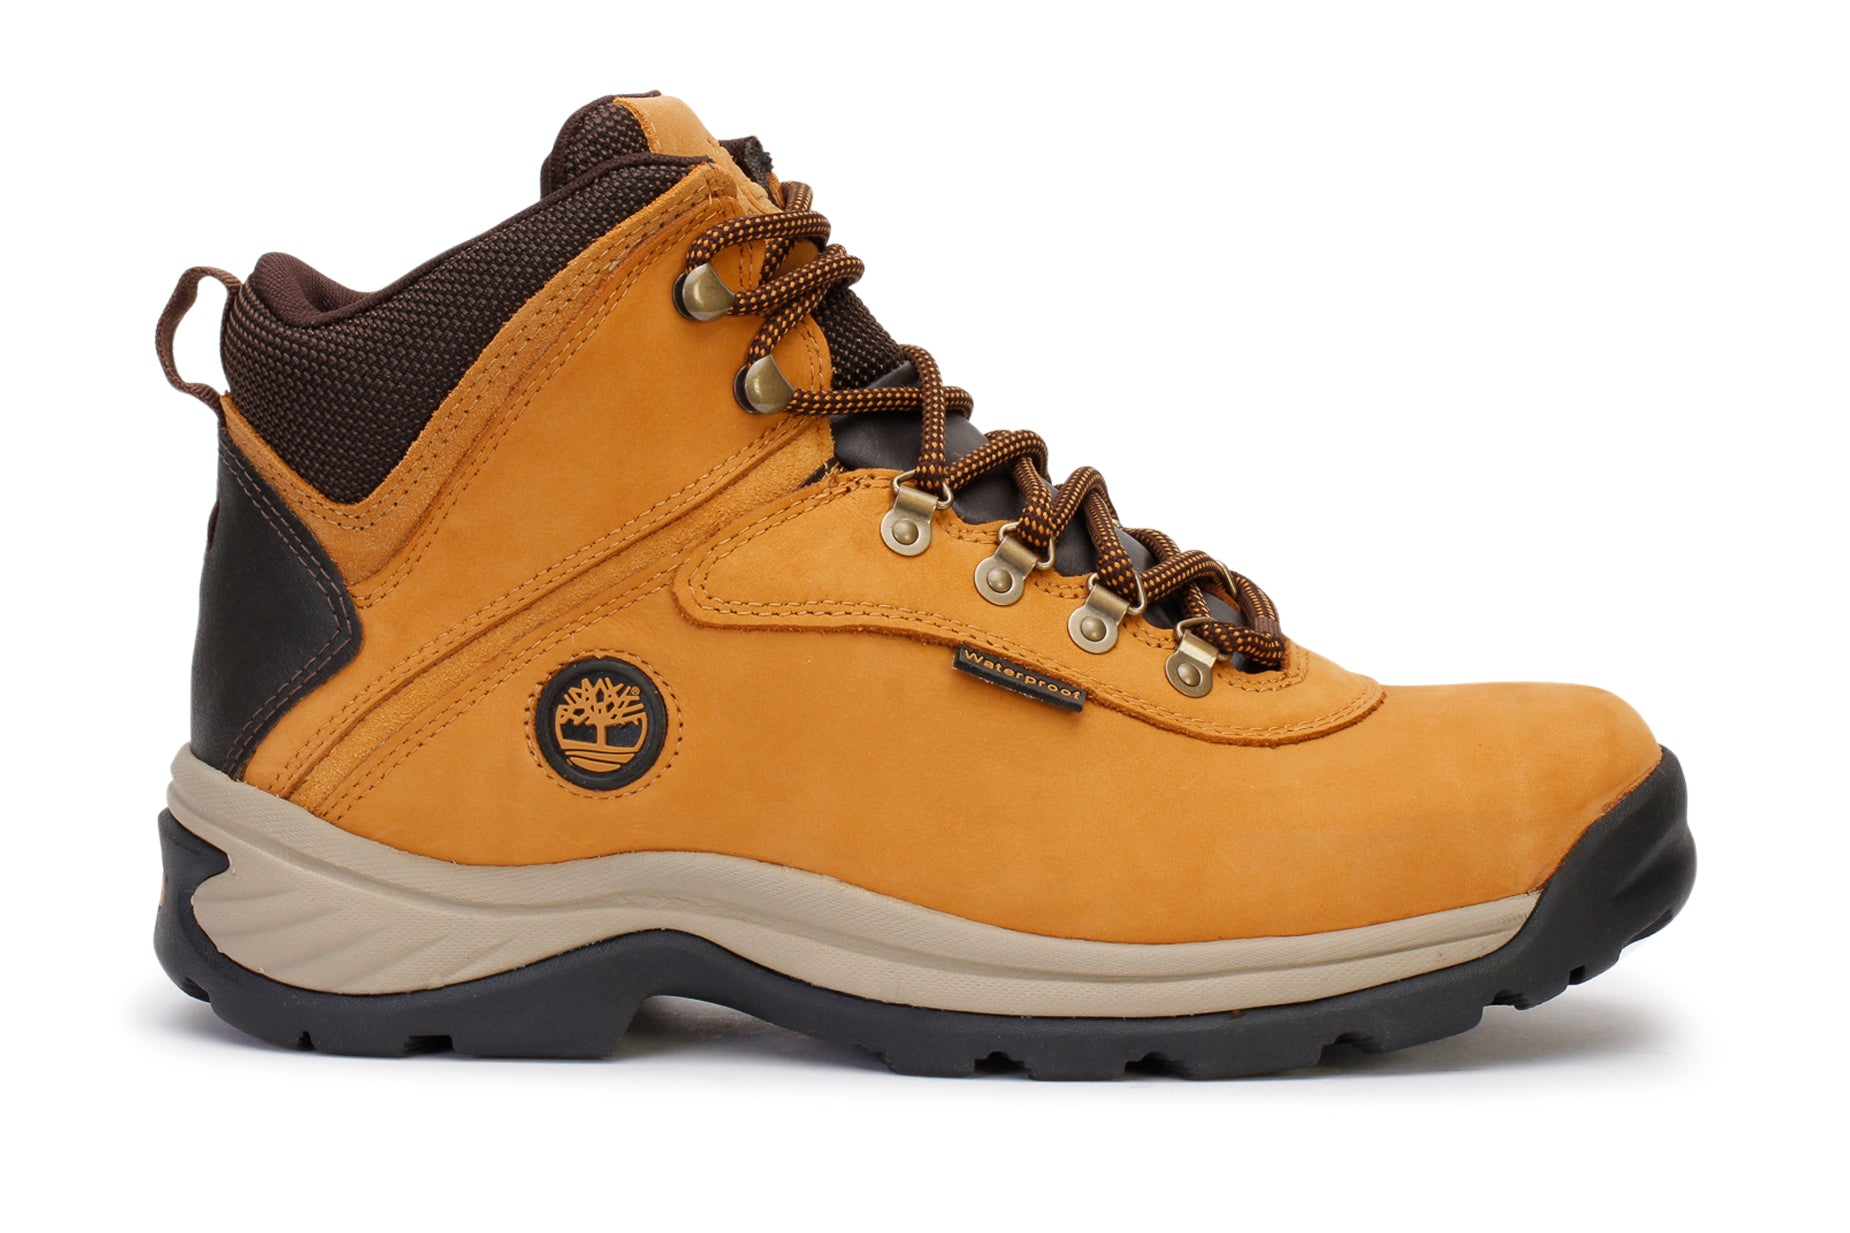 White Ledge Mid Waterproof Timberland Boots